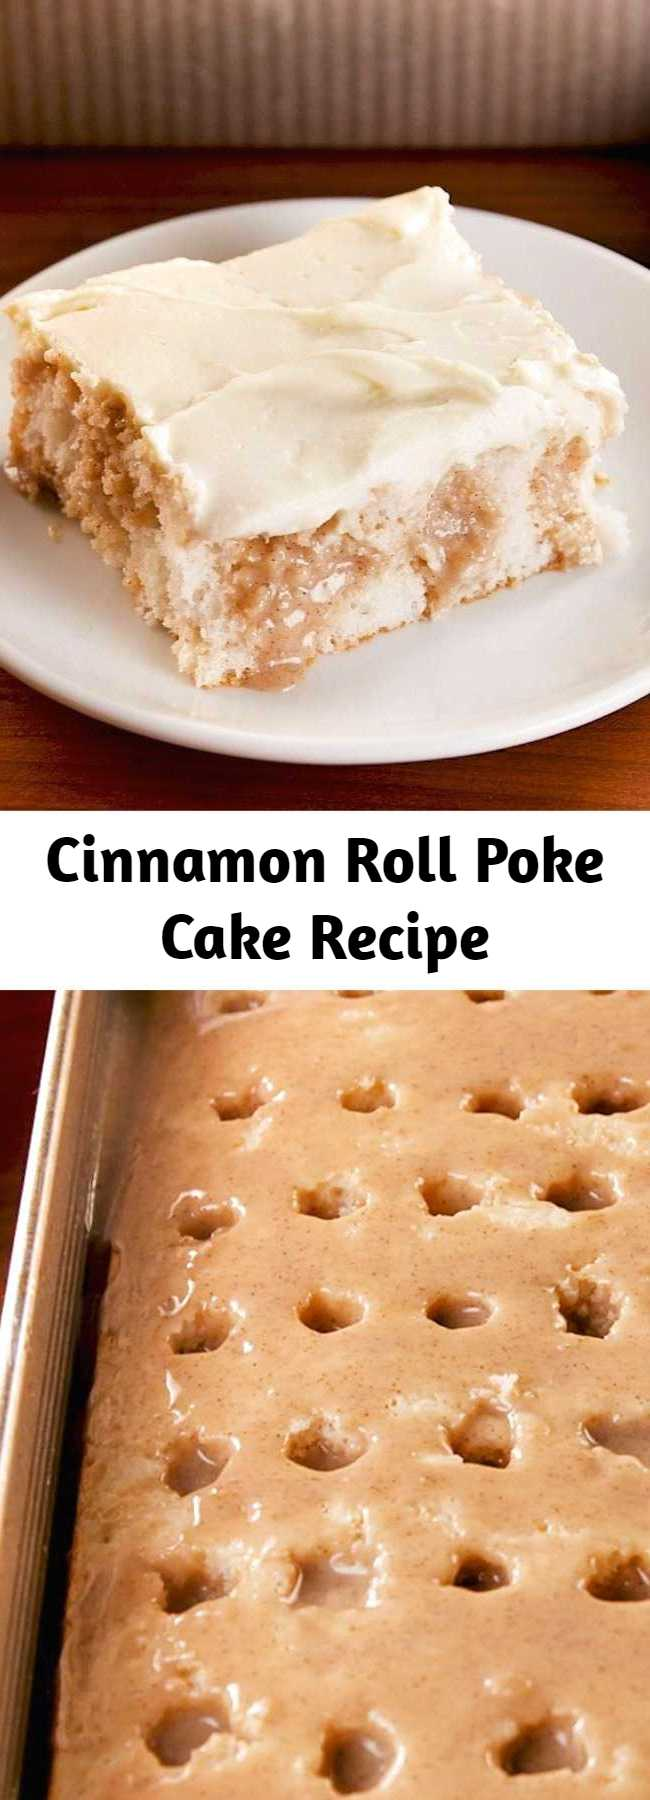 Cinnamon Roll Poke Cake Recipe - Get your cake pans ready for the most epic poke cake. It has everything you love about cinnamon rolls, even the cream cheese frosting! It's extremely decadent and exactly what we are craving at every moment of the day. #easy #recipe #cinnamonroll #pokecake #cinnamonrollpokecake #cakes #easydesserts